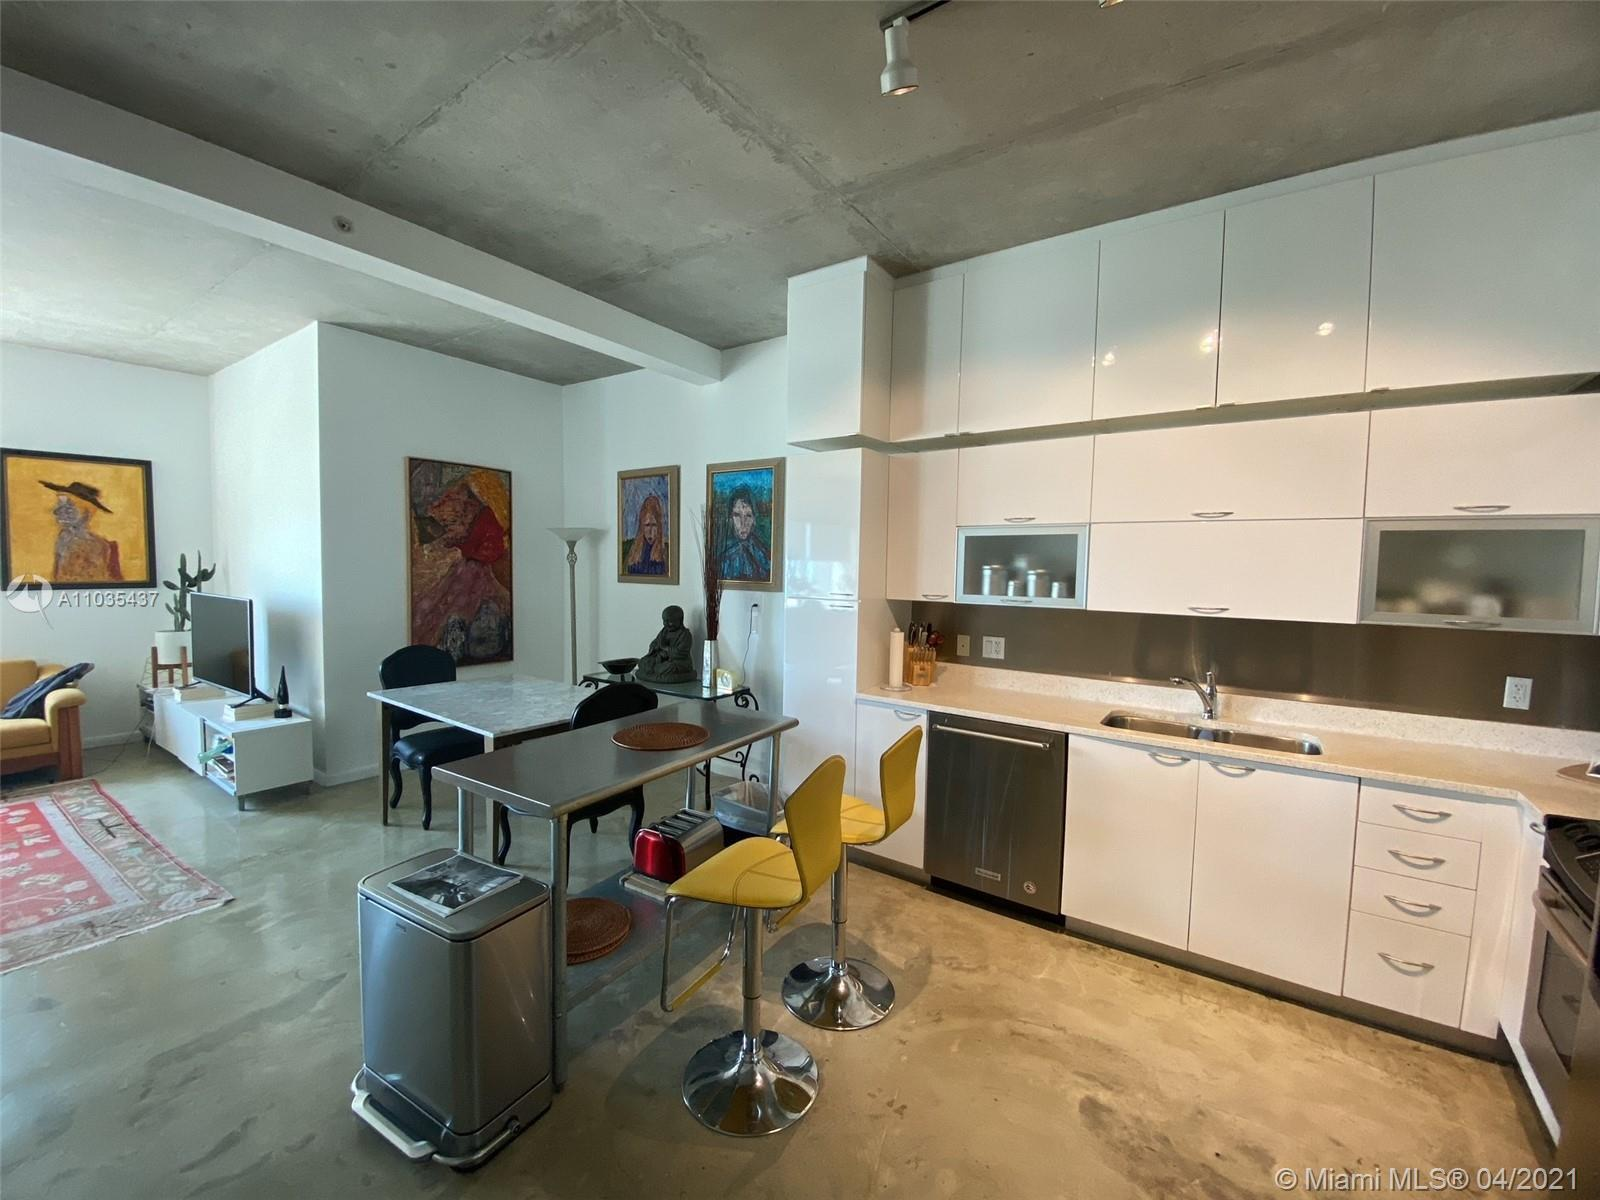 Broker 305 is pleased to offer one of the largest 1 Bedroom lines at The Loft I Boutique Condo Build